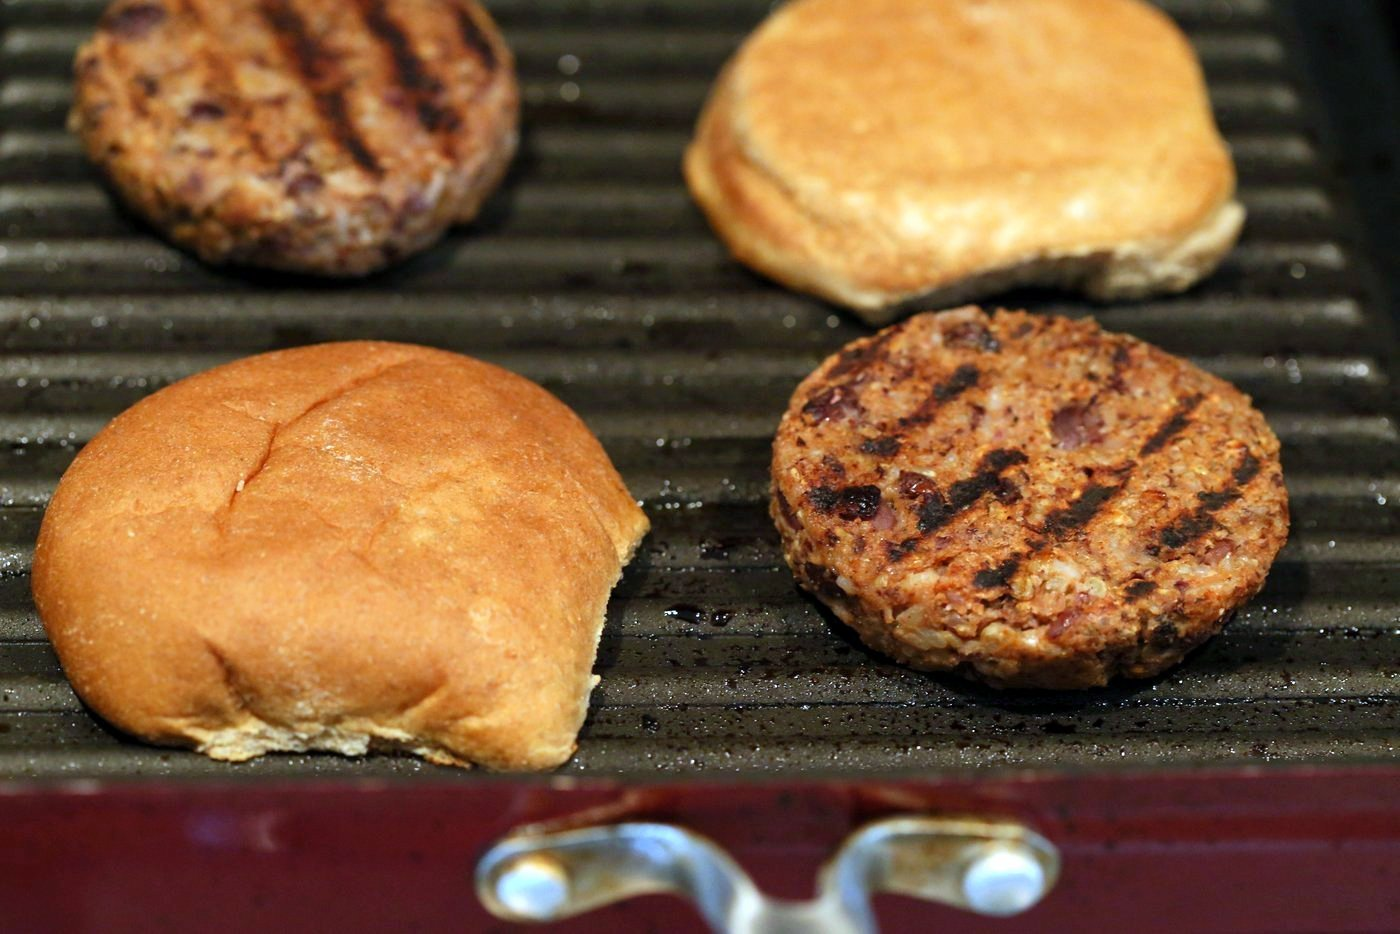 Grillable Veggie Burger. No Nuts. Easy Black Bean Burger with Veggies and spices. Pan fry, Bake or Grill. Serve with BBQ Sauce and other fix ins. Vegan Burger Recipe. Gluten-free option. Nut-free. Soy-free option   VeganRicha.com